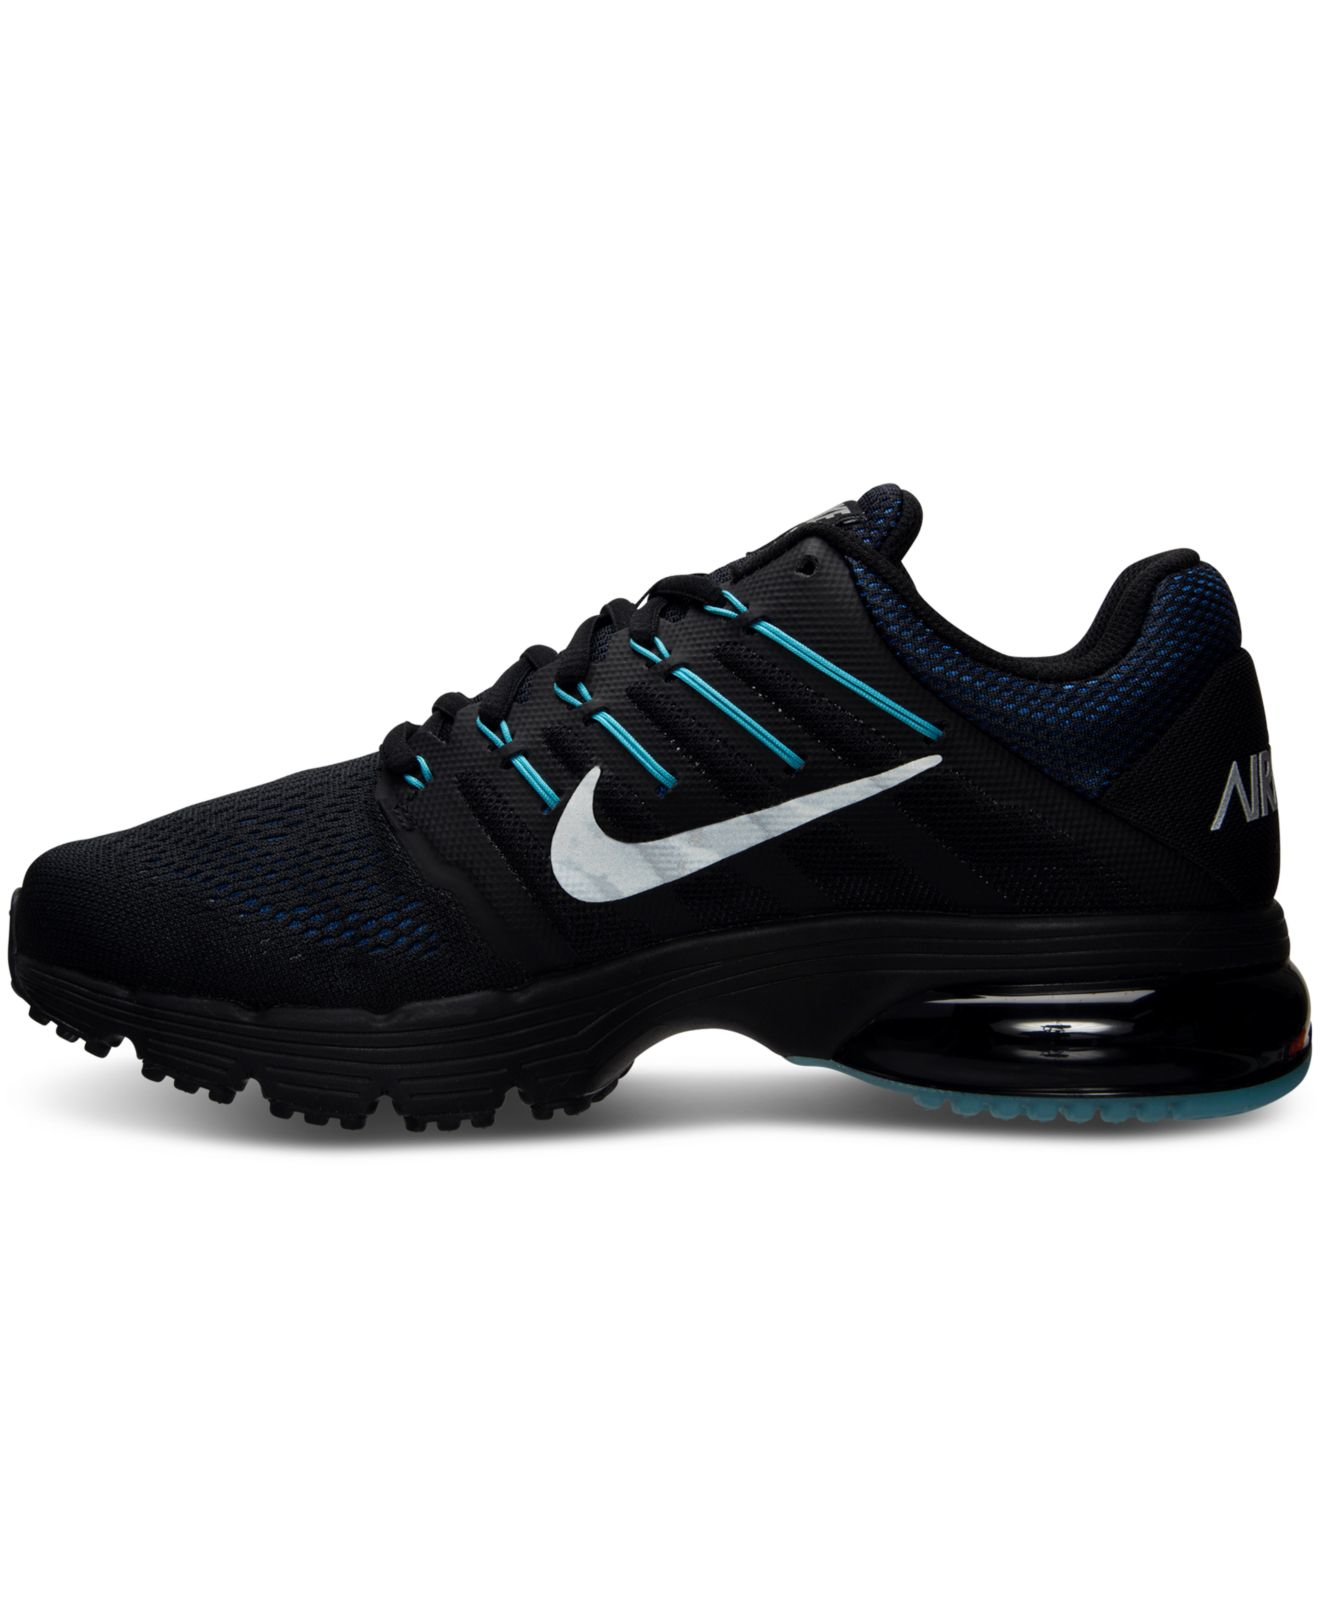 low priced bcd47 31cd8 Lyst - Nike Mens Air Max Excellerate 4 Premium Running Sneak